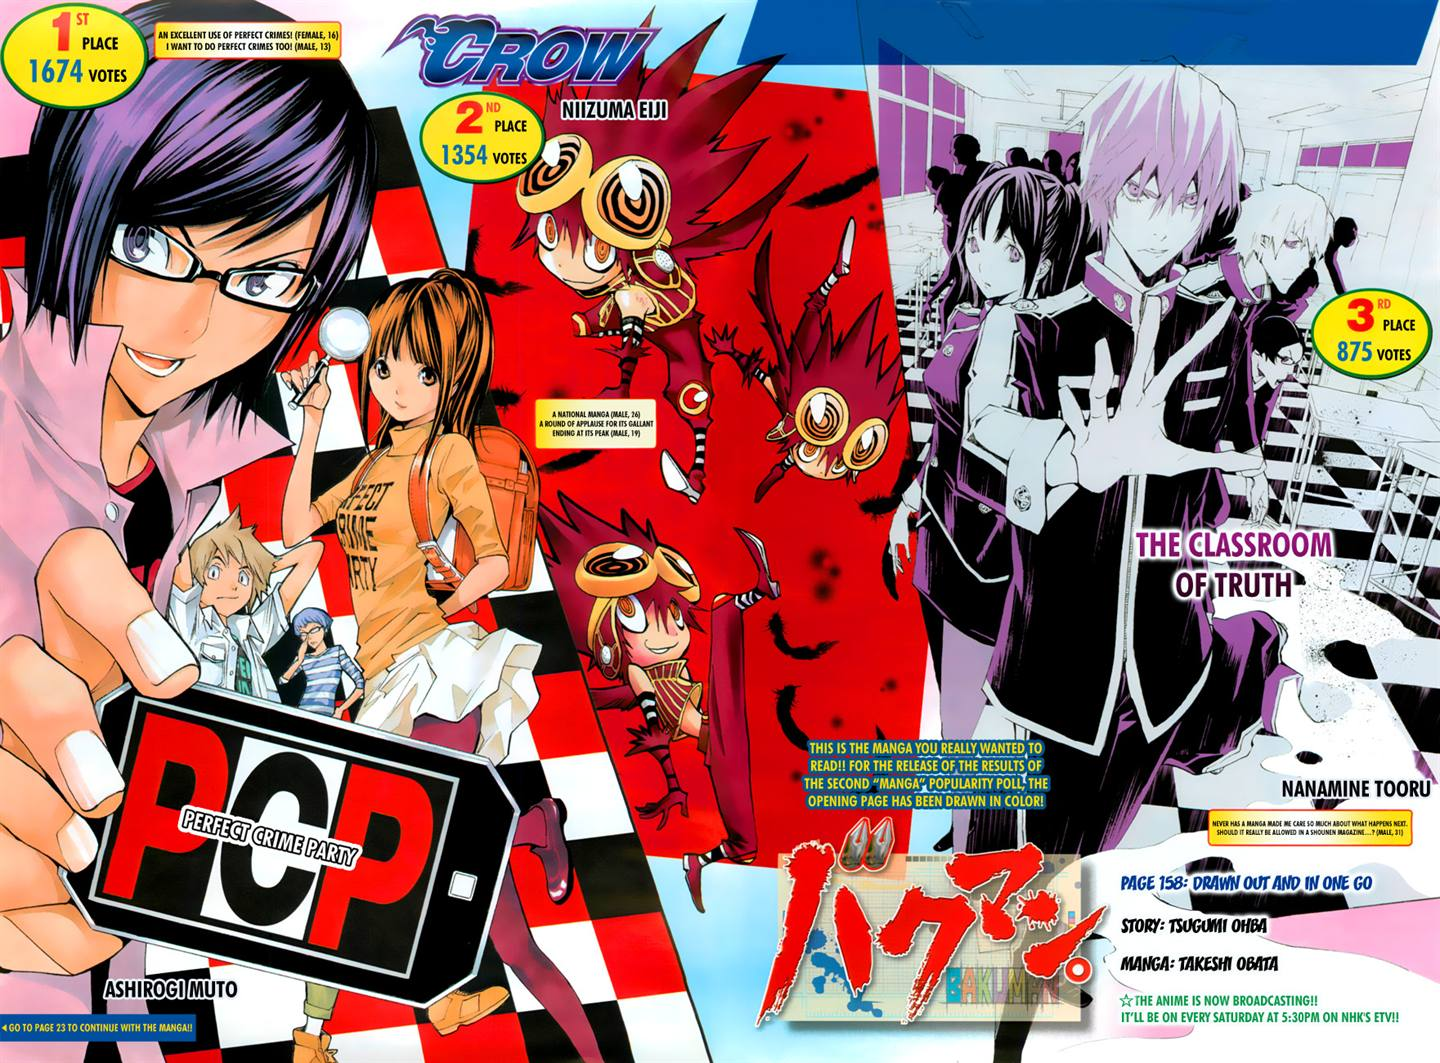 Anime Characters Popularity Poll : Drawn out and in one go bakuman wiki fandom powered by